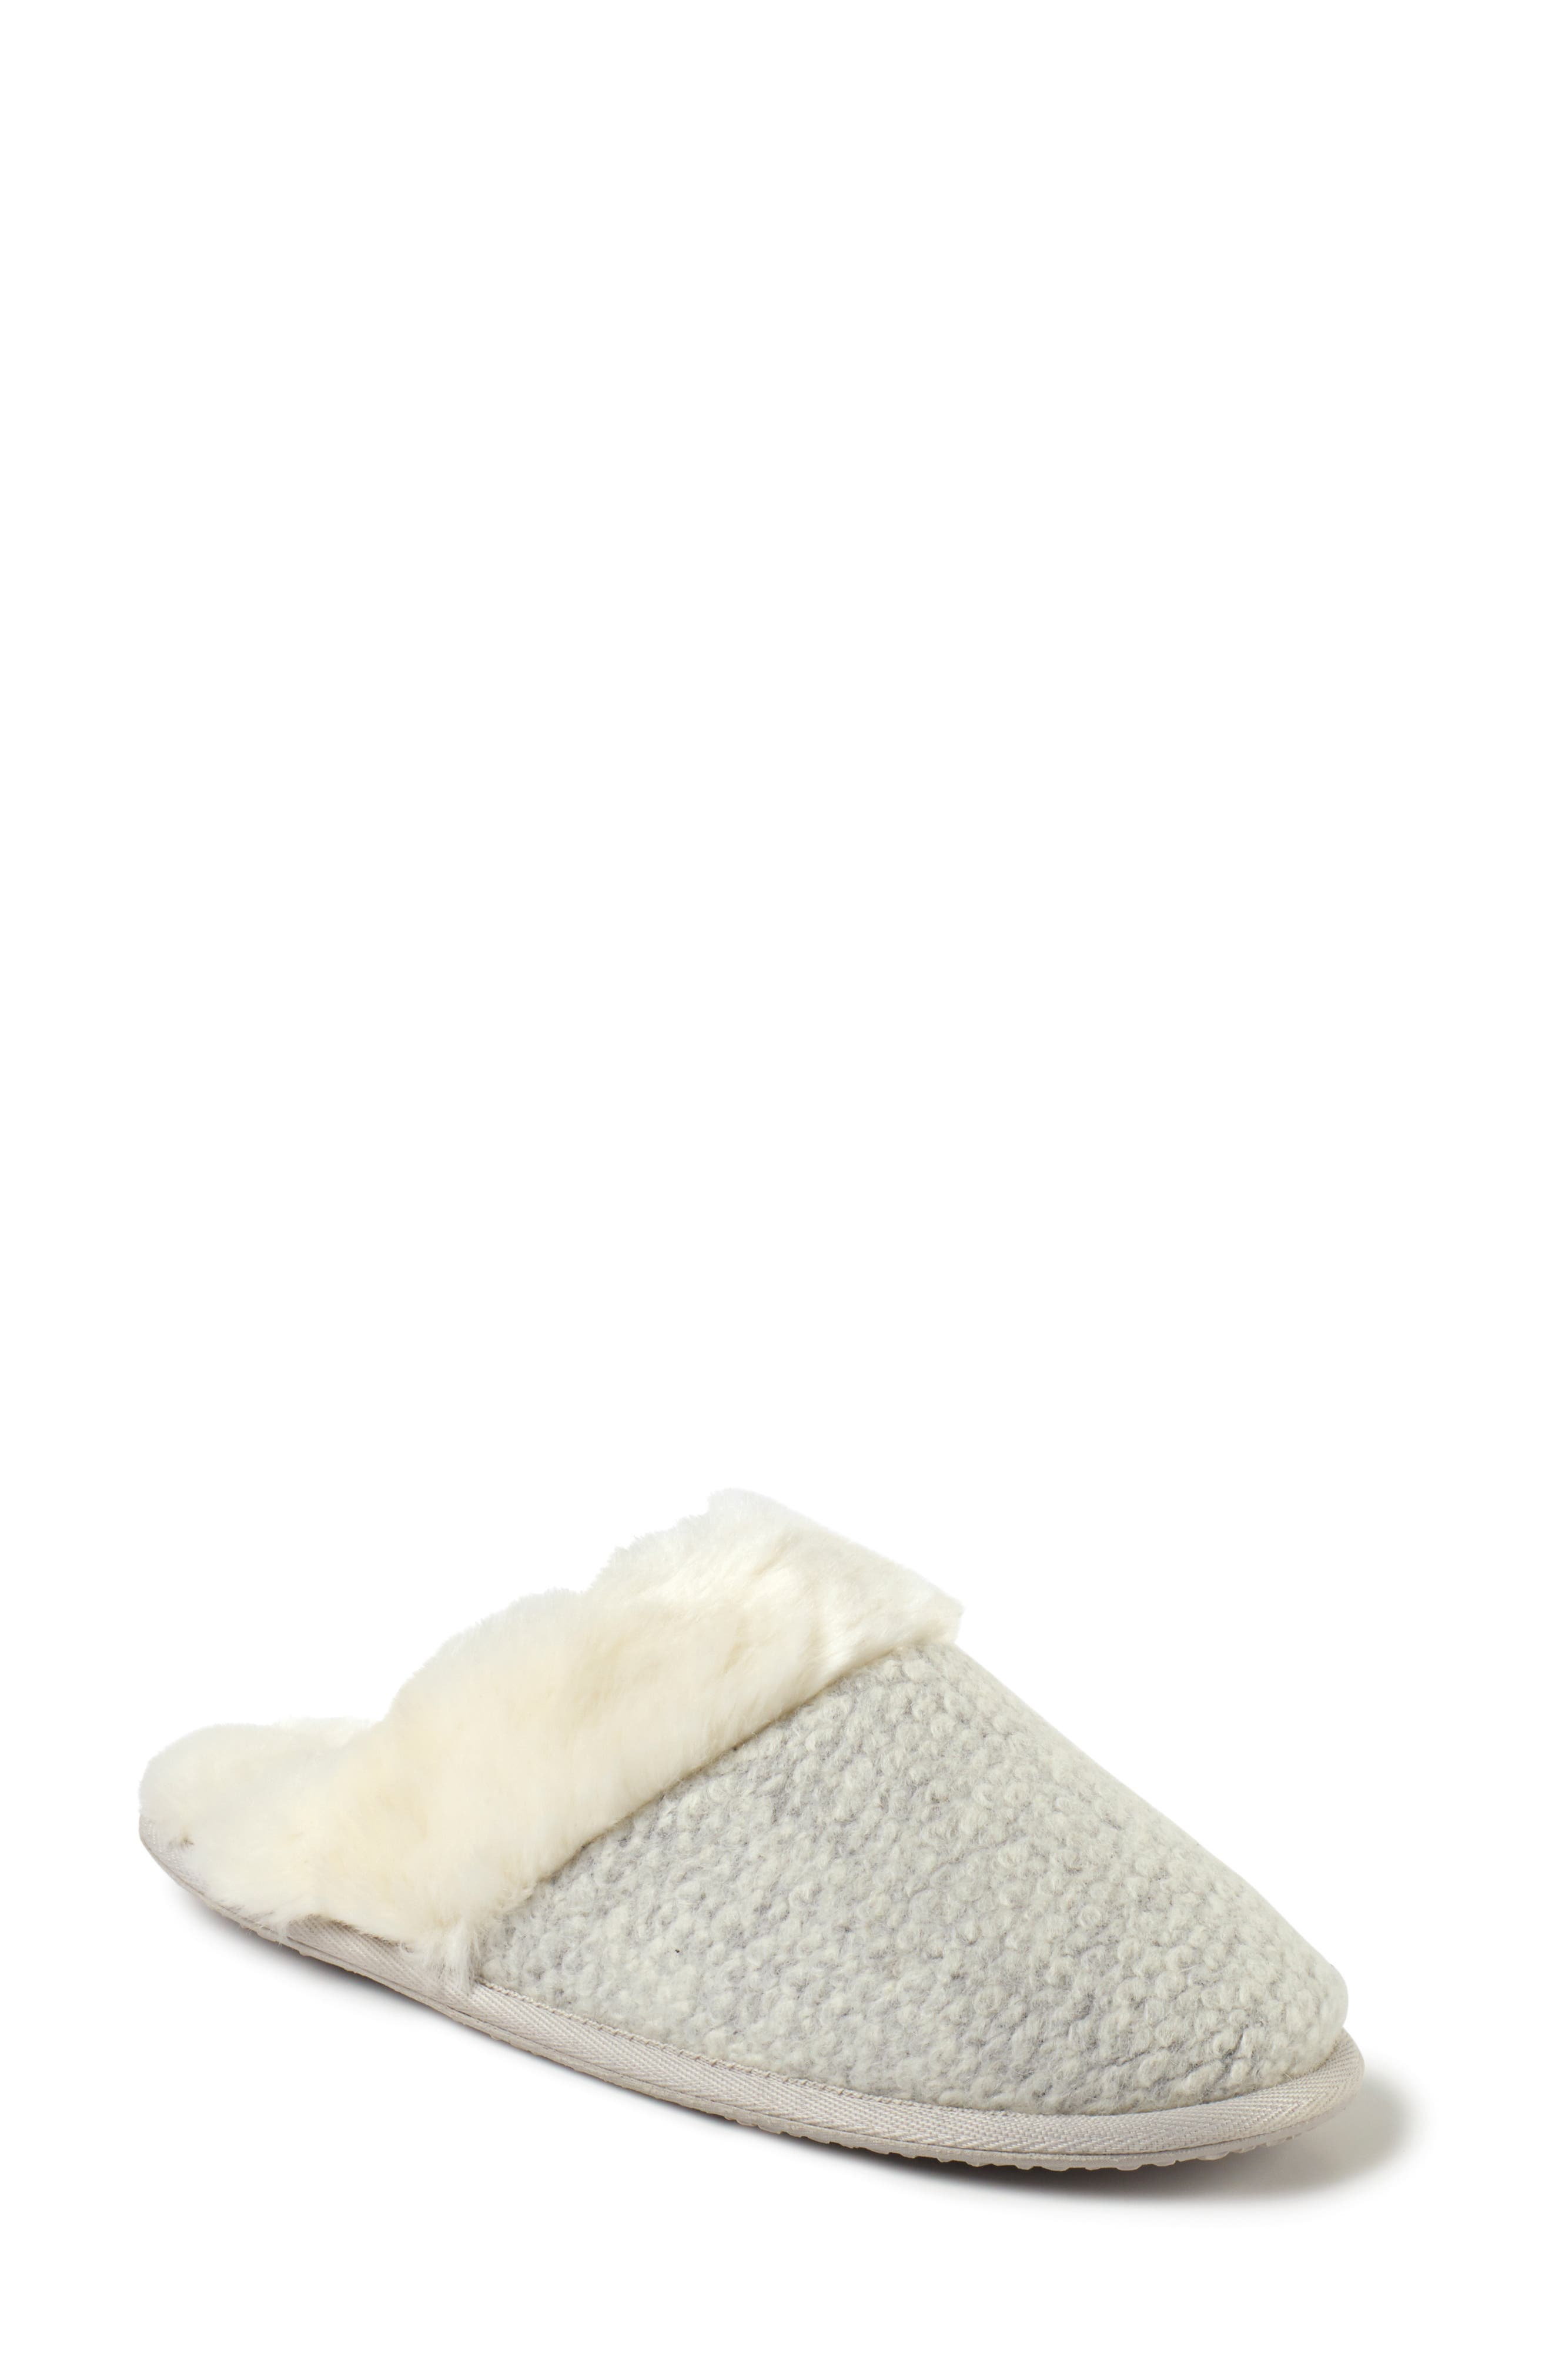 Textured Felt Mule Slipper,                         Main,                         color, CLOUD HEATHER / IVORY